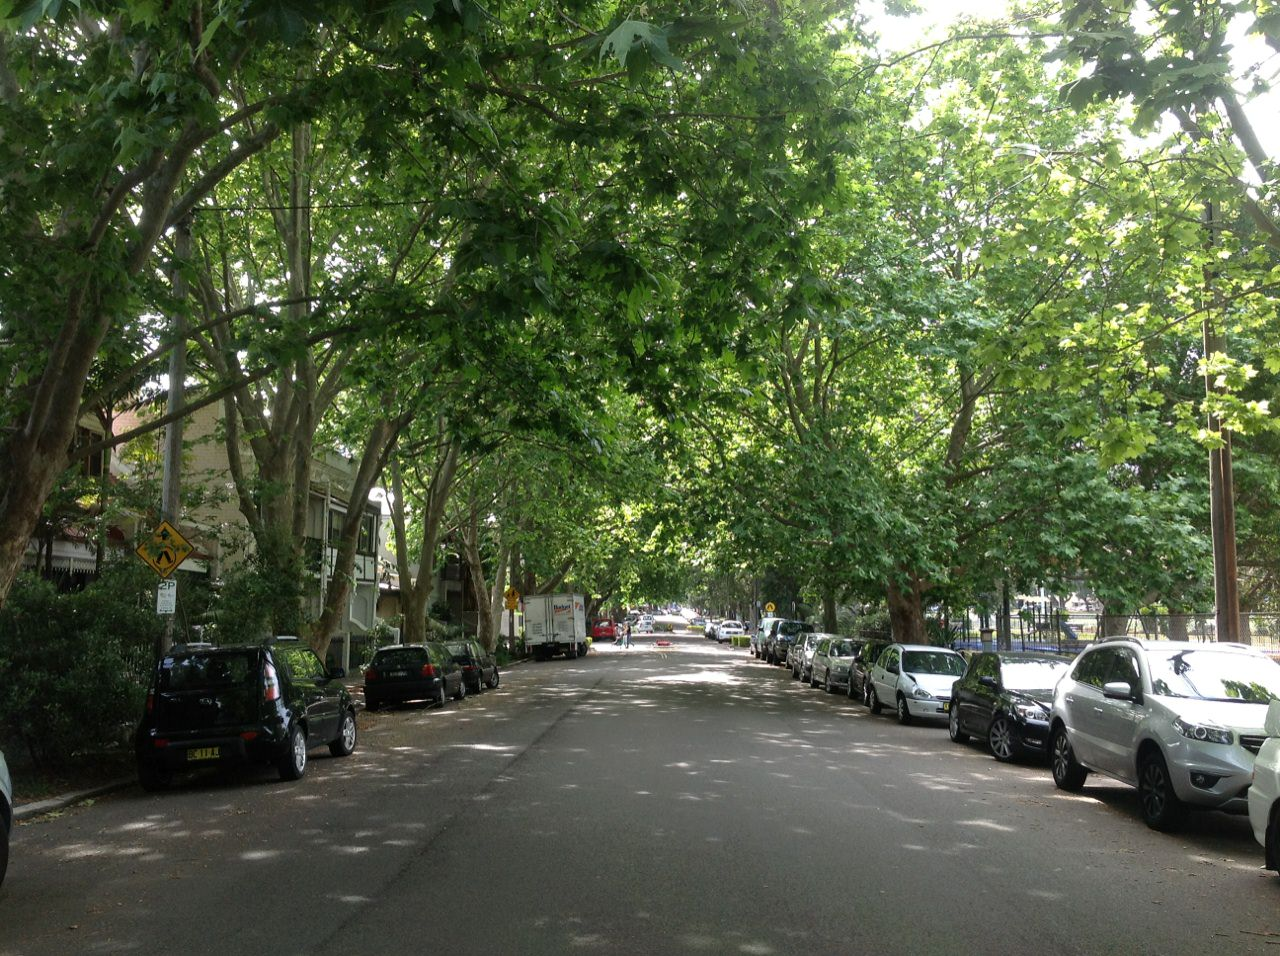 The London Plane Tree avenue along Buckland Street, Alexandria